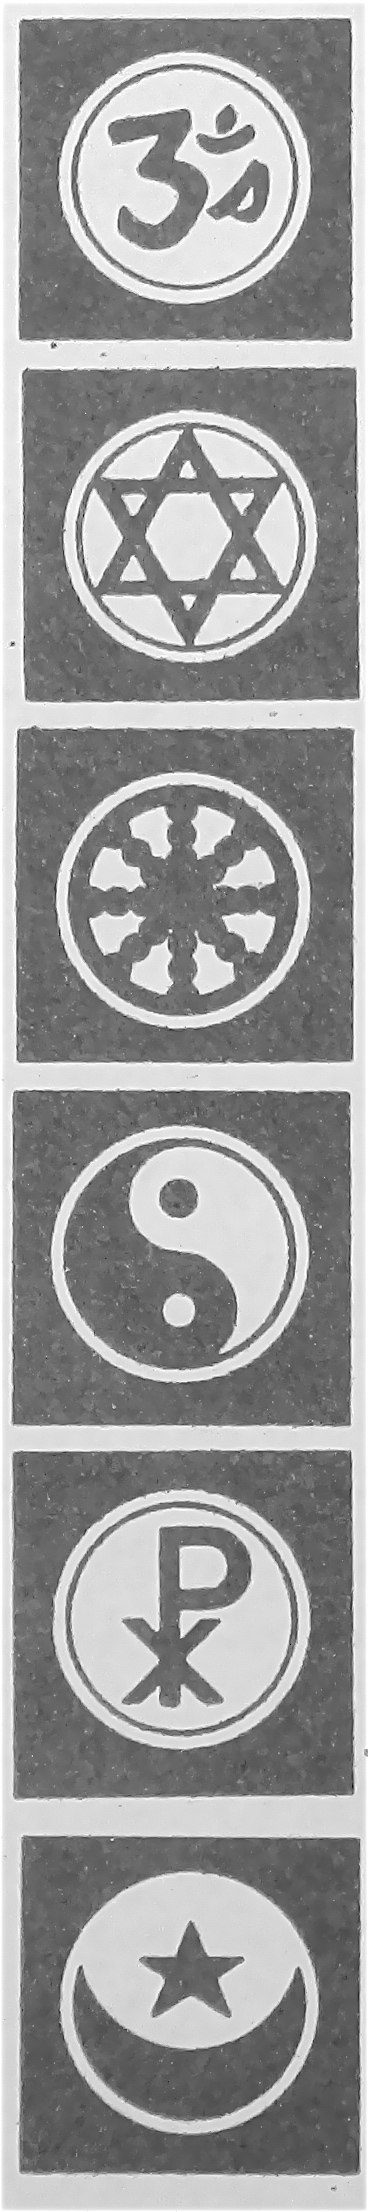 AWE_John-of-God_-symbols_1.JPG